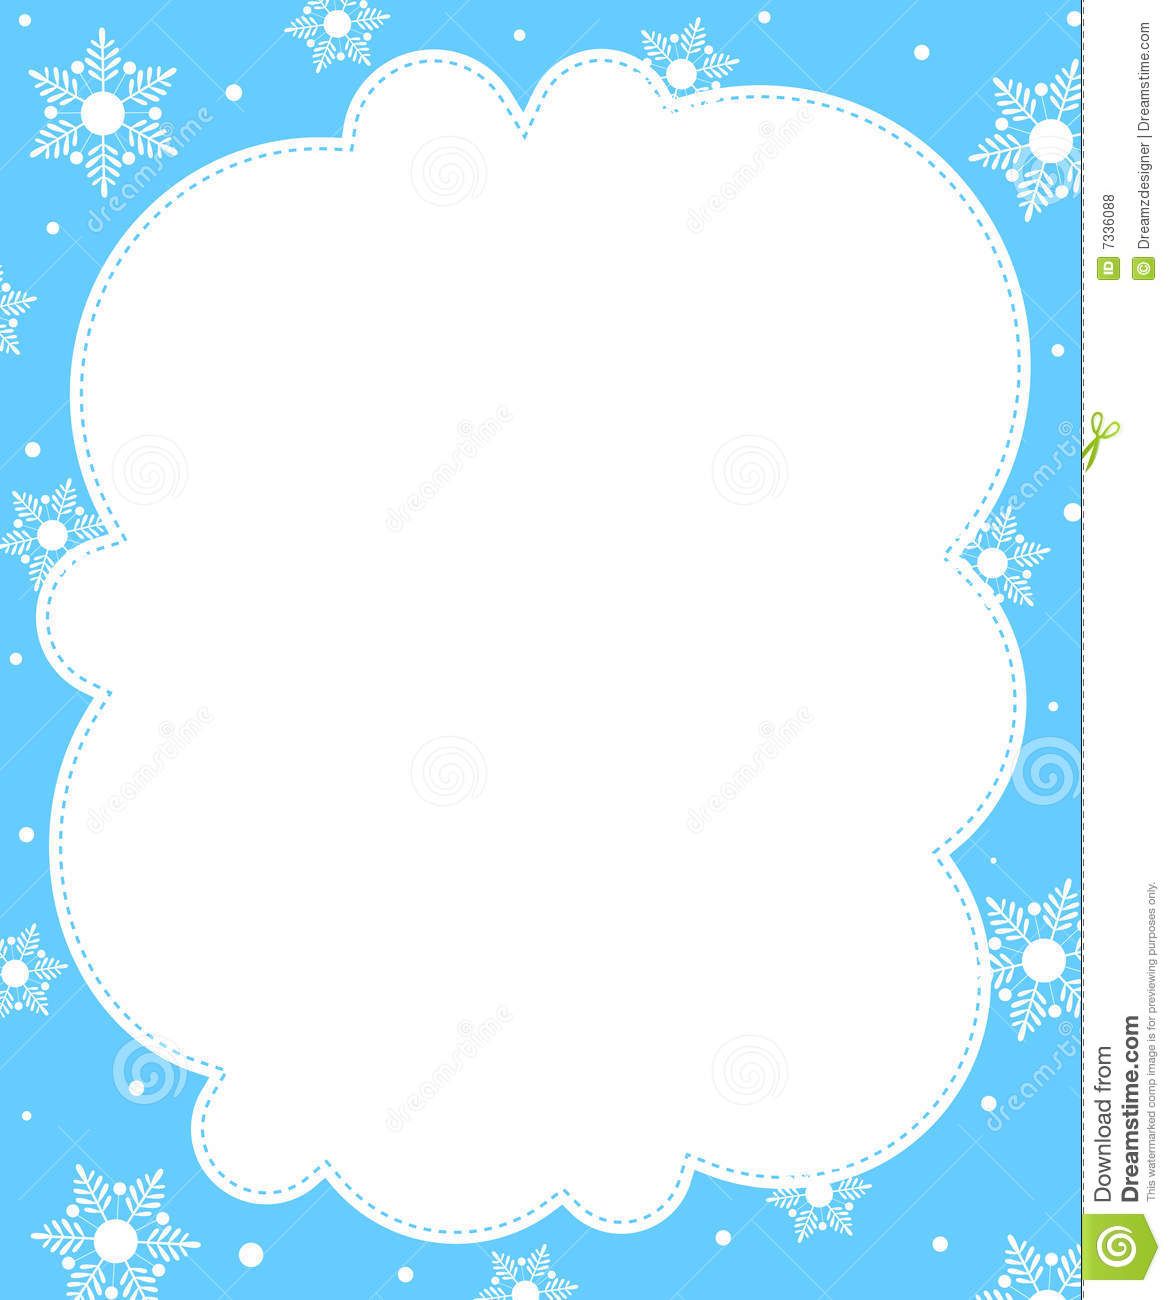 Cute Snowflakes Christmas   Winter Border   Frame  Falling Snow On